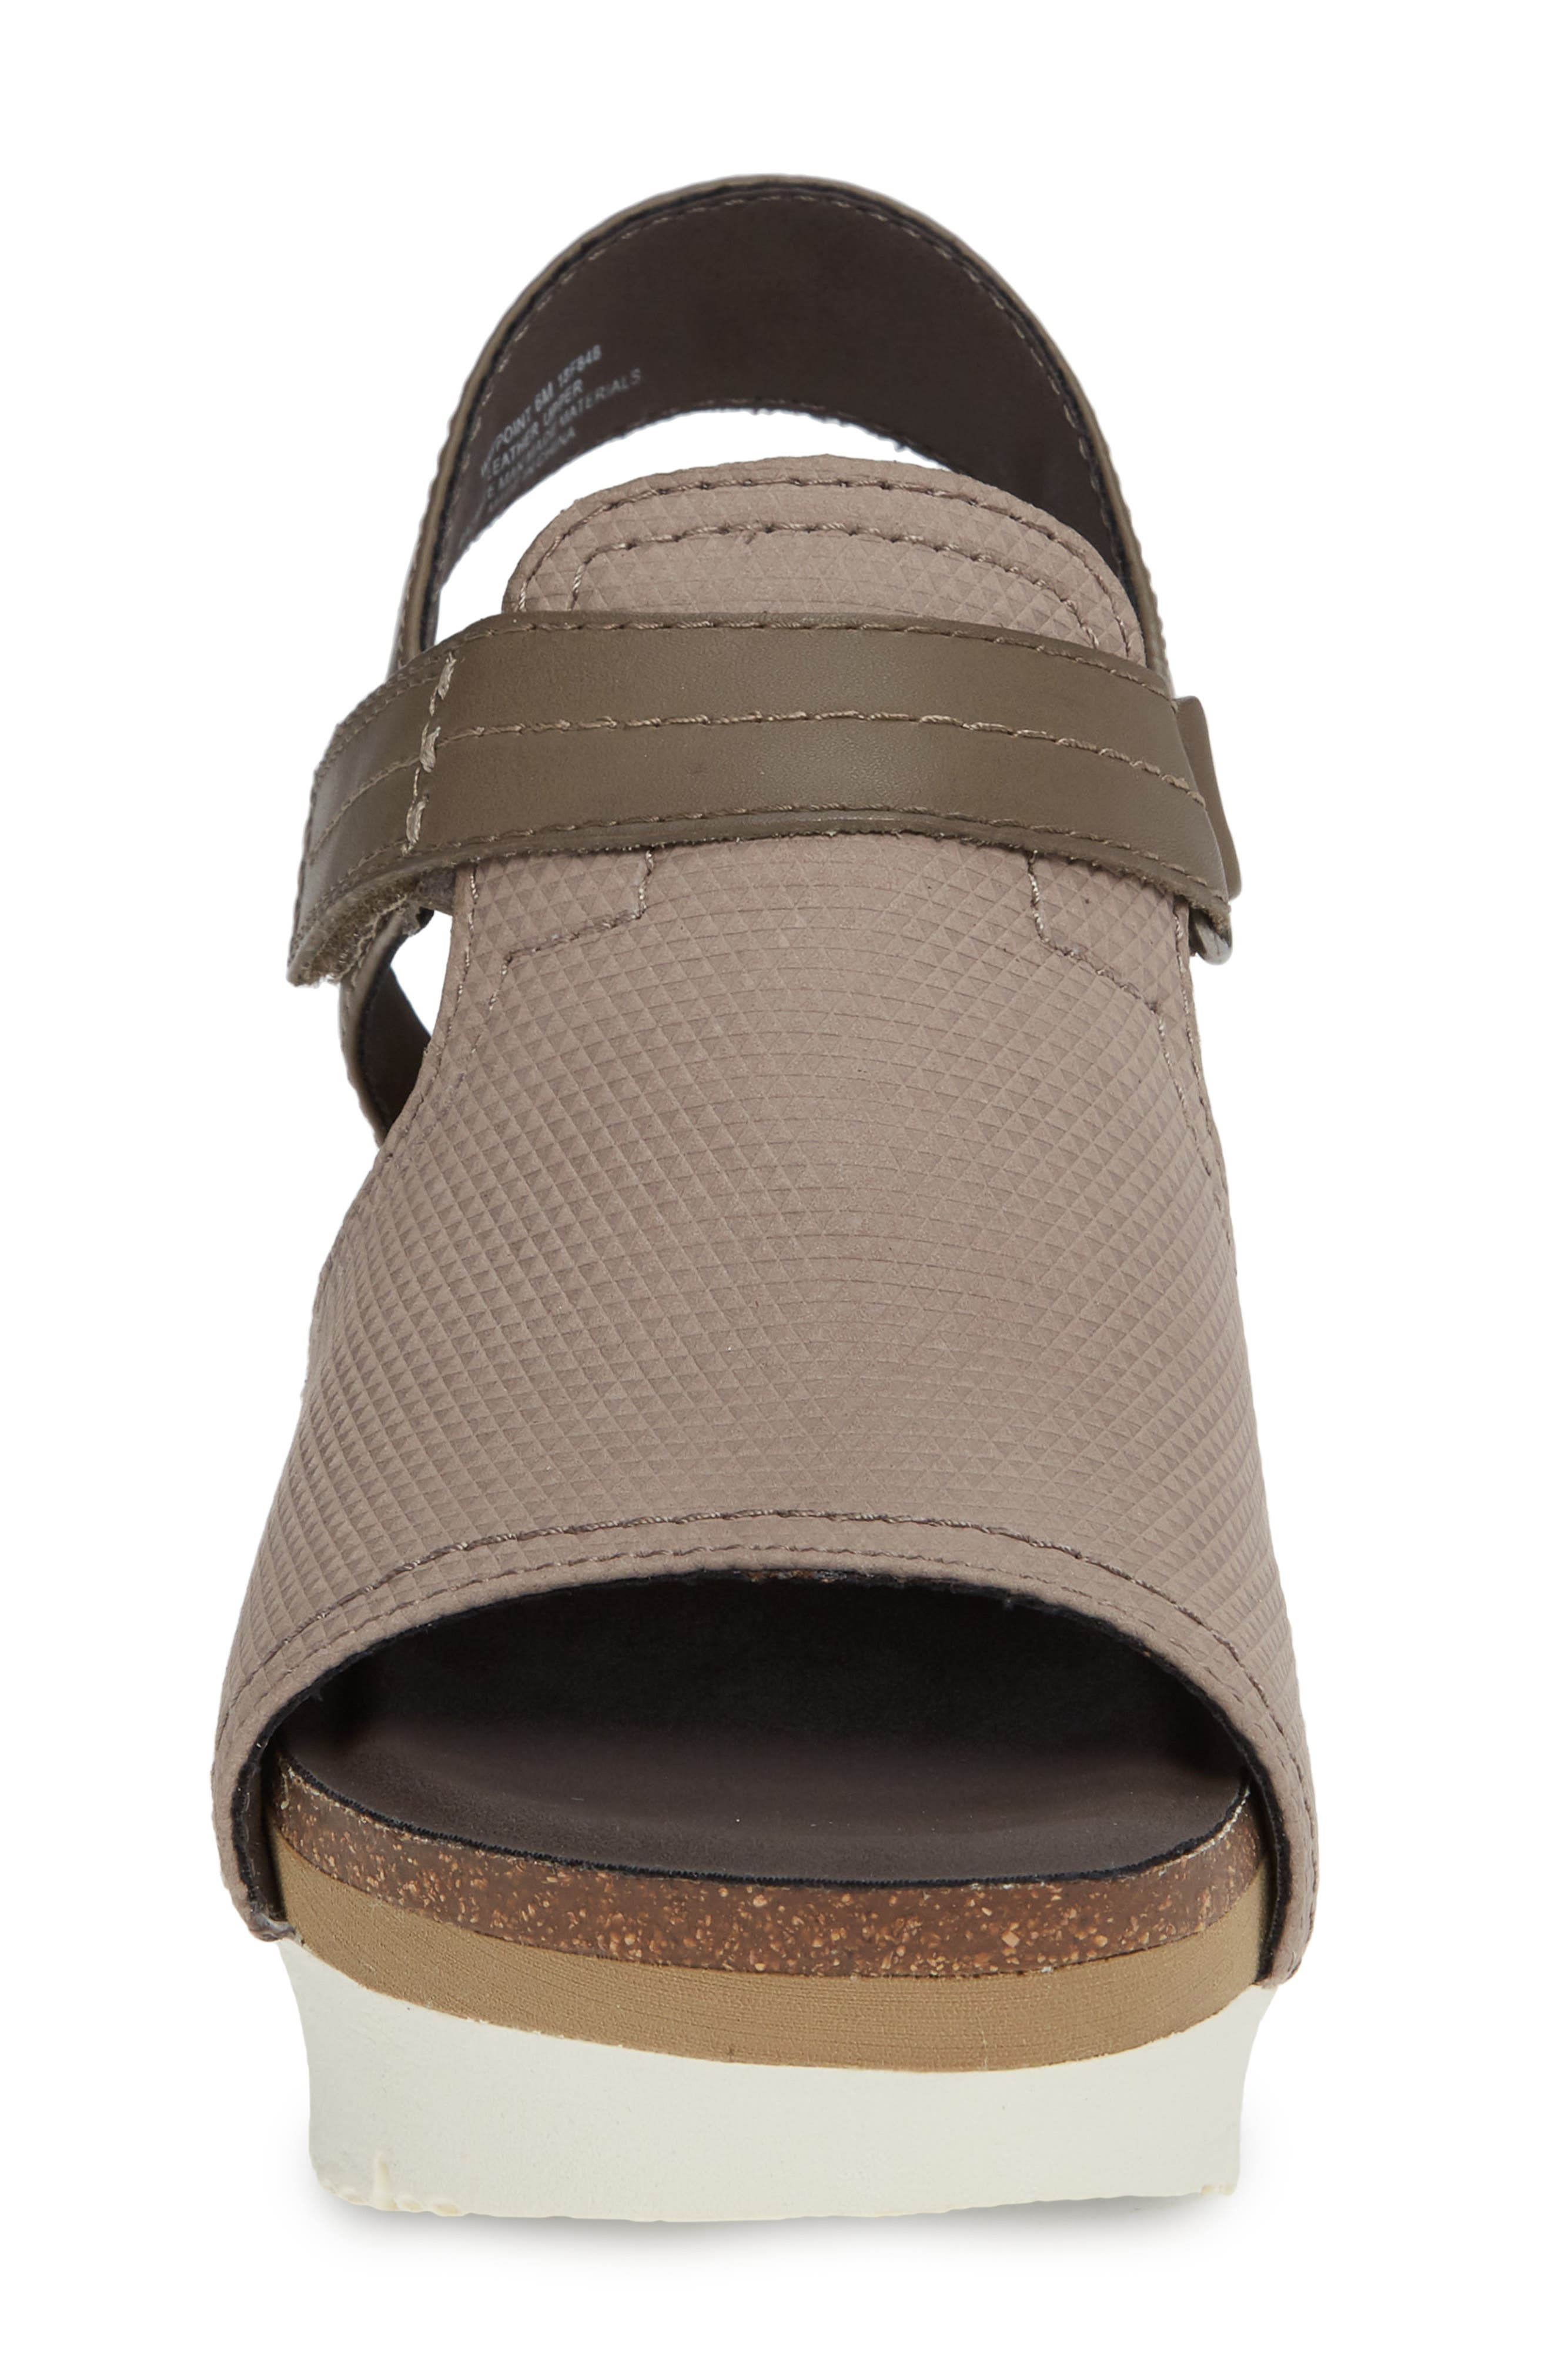 Waypoint Wedge Sandal,                             Alternate thumbnail 4, color,                             CACAO LEATHER